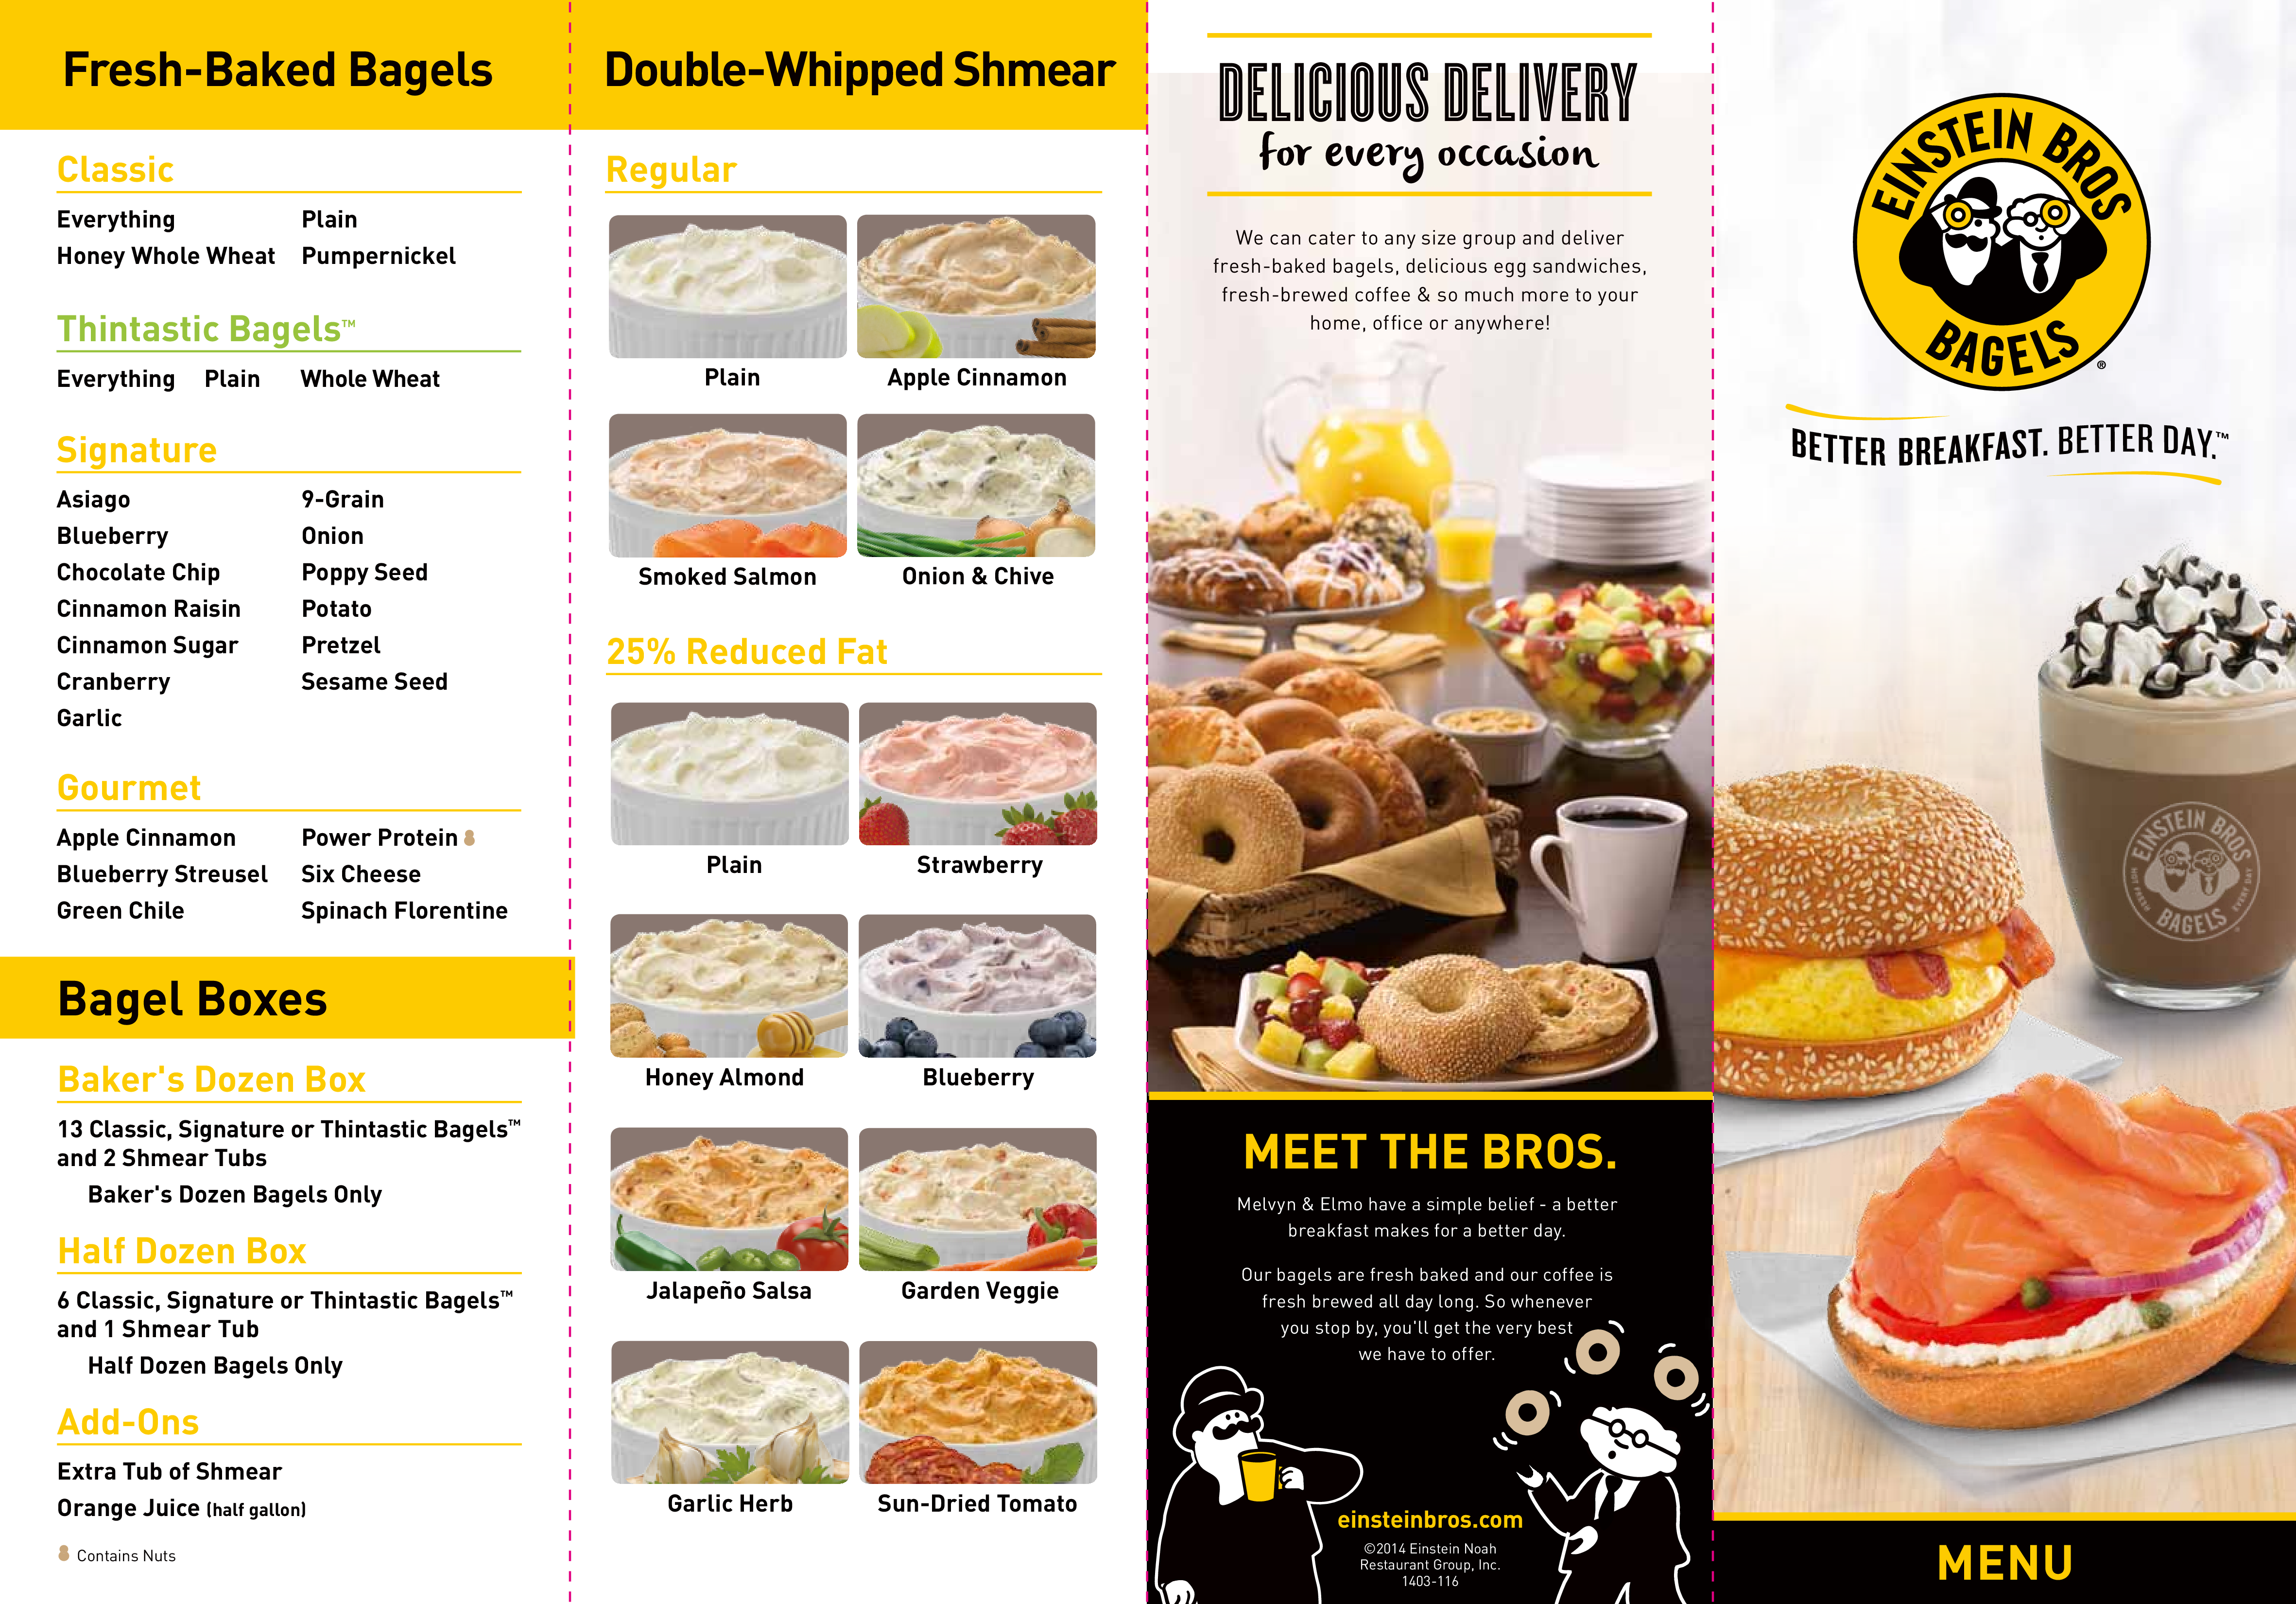 Einstein Bros  Bagels Menu, Menu for Einstein Bros  Bagels